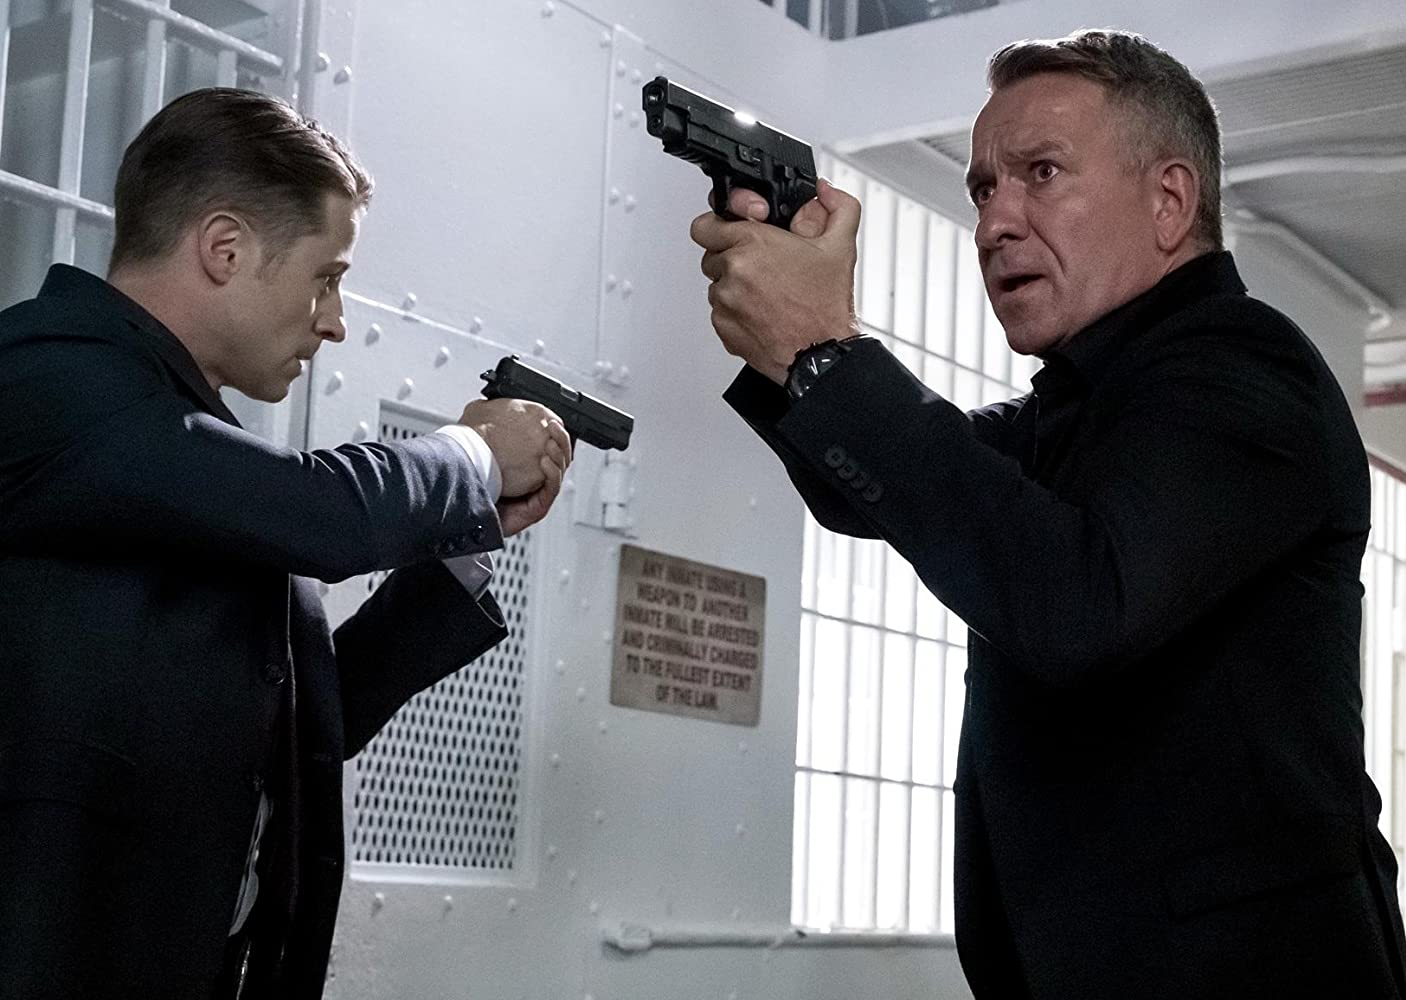 Sean Pertwee and Ben McKenzie in Gotham (2014)